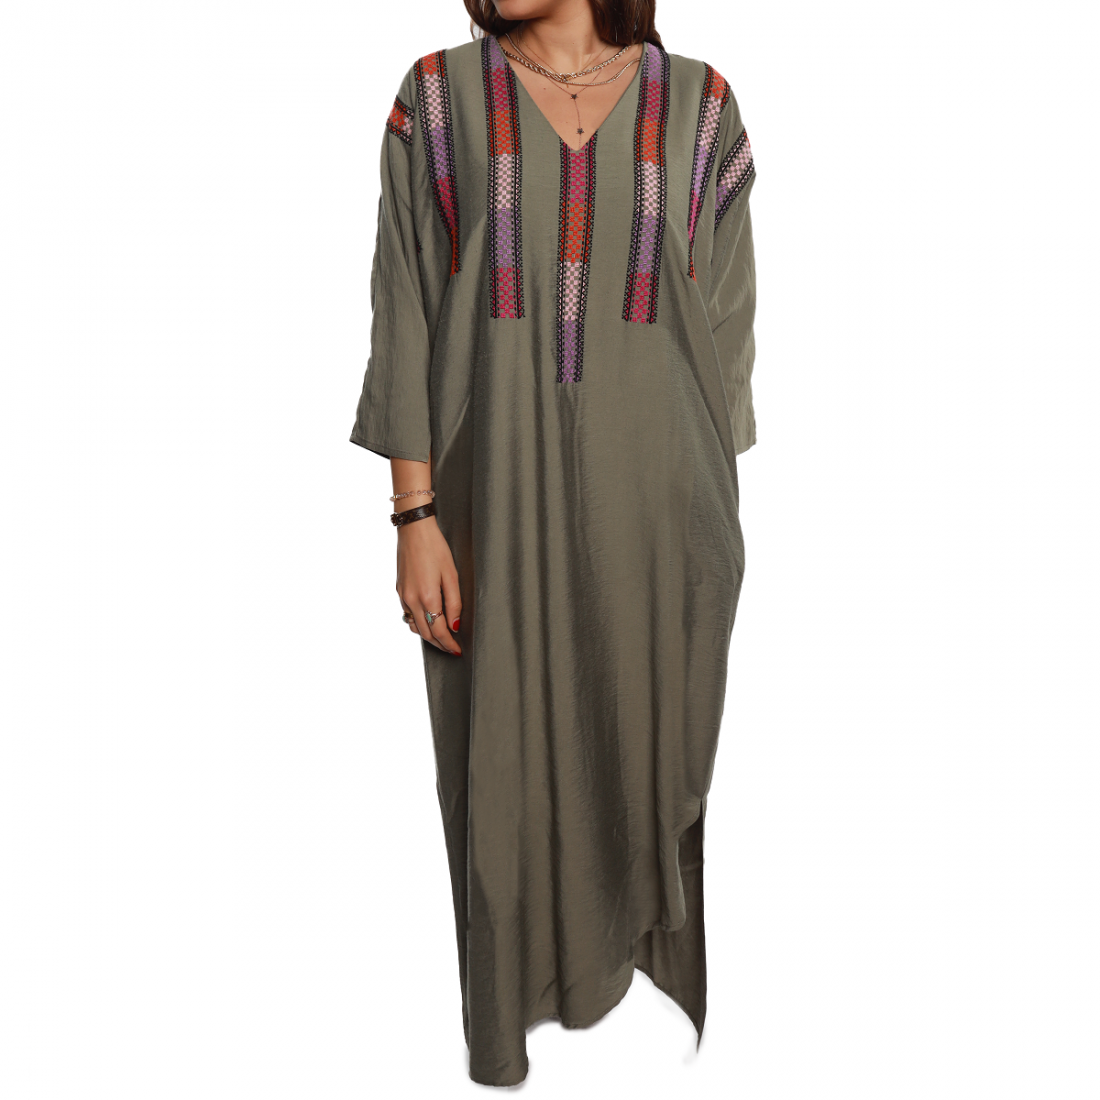 Olive hand embroidered Cotton Summer Caftan